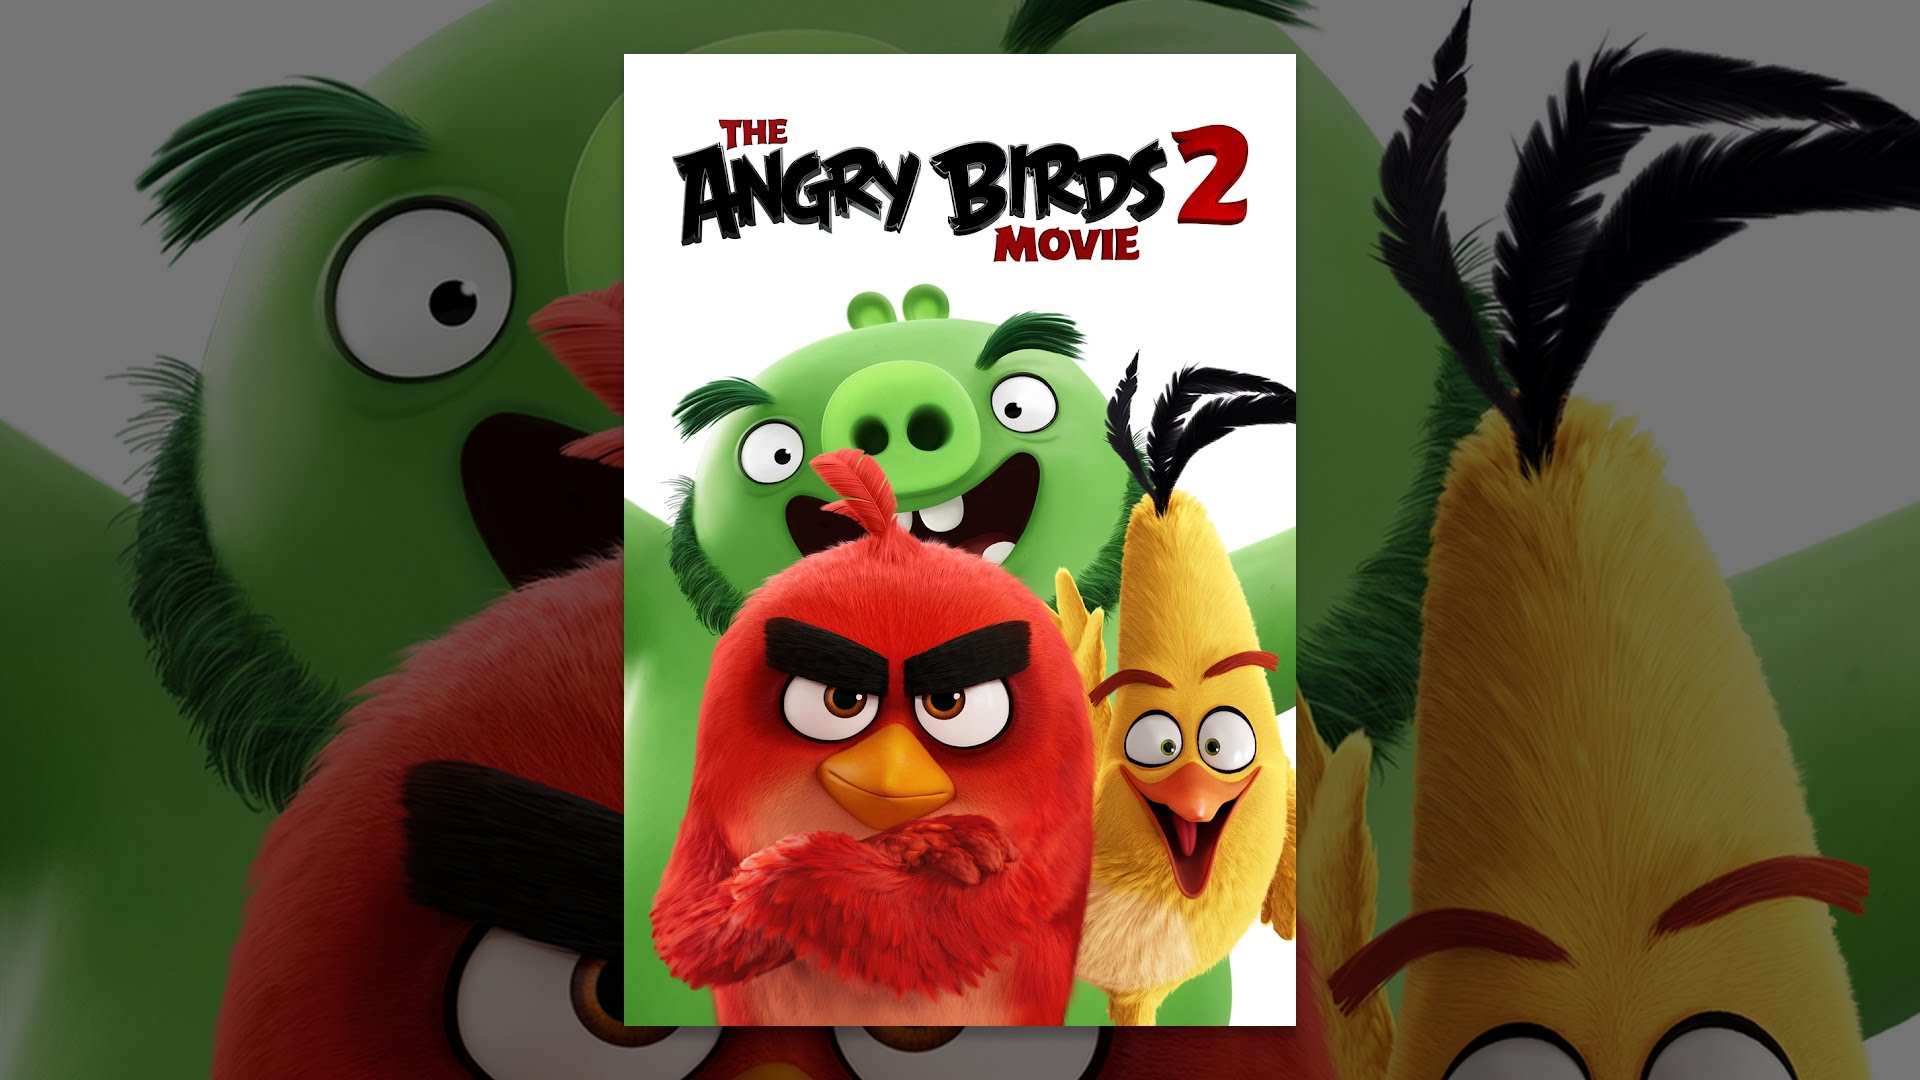 Movie Pooper For The Film The Angry Birds Movie 2